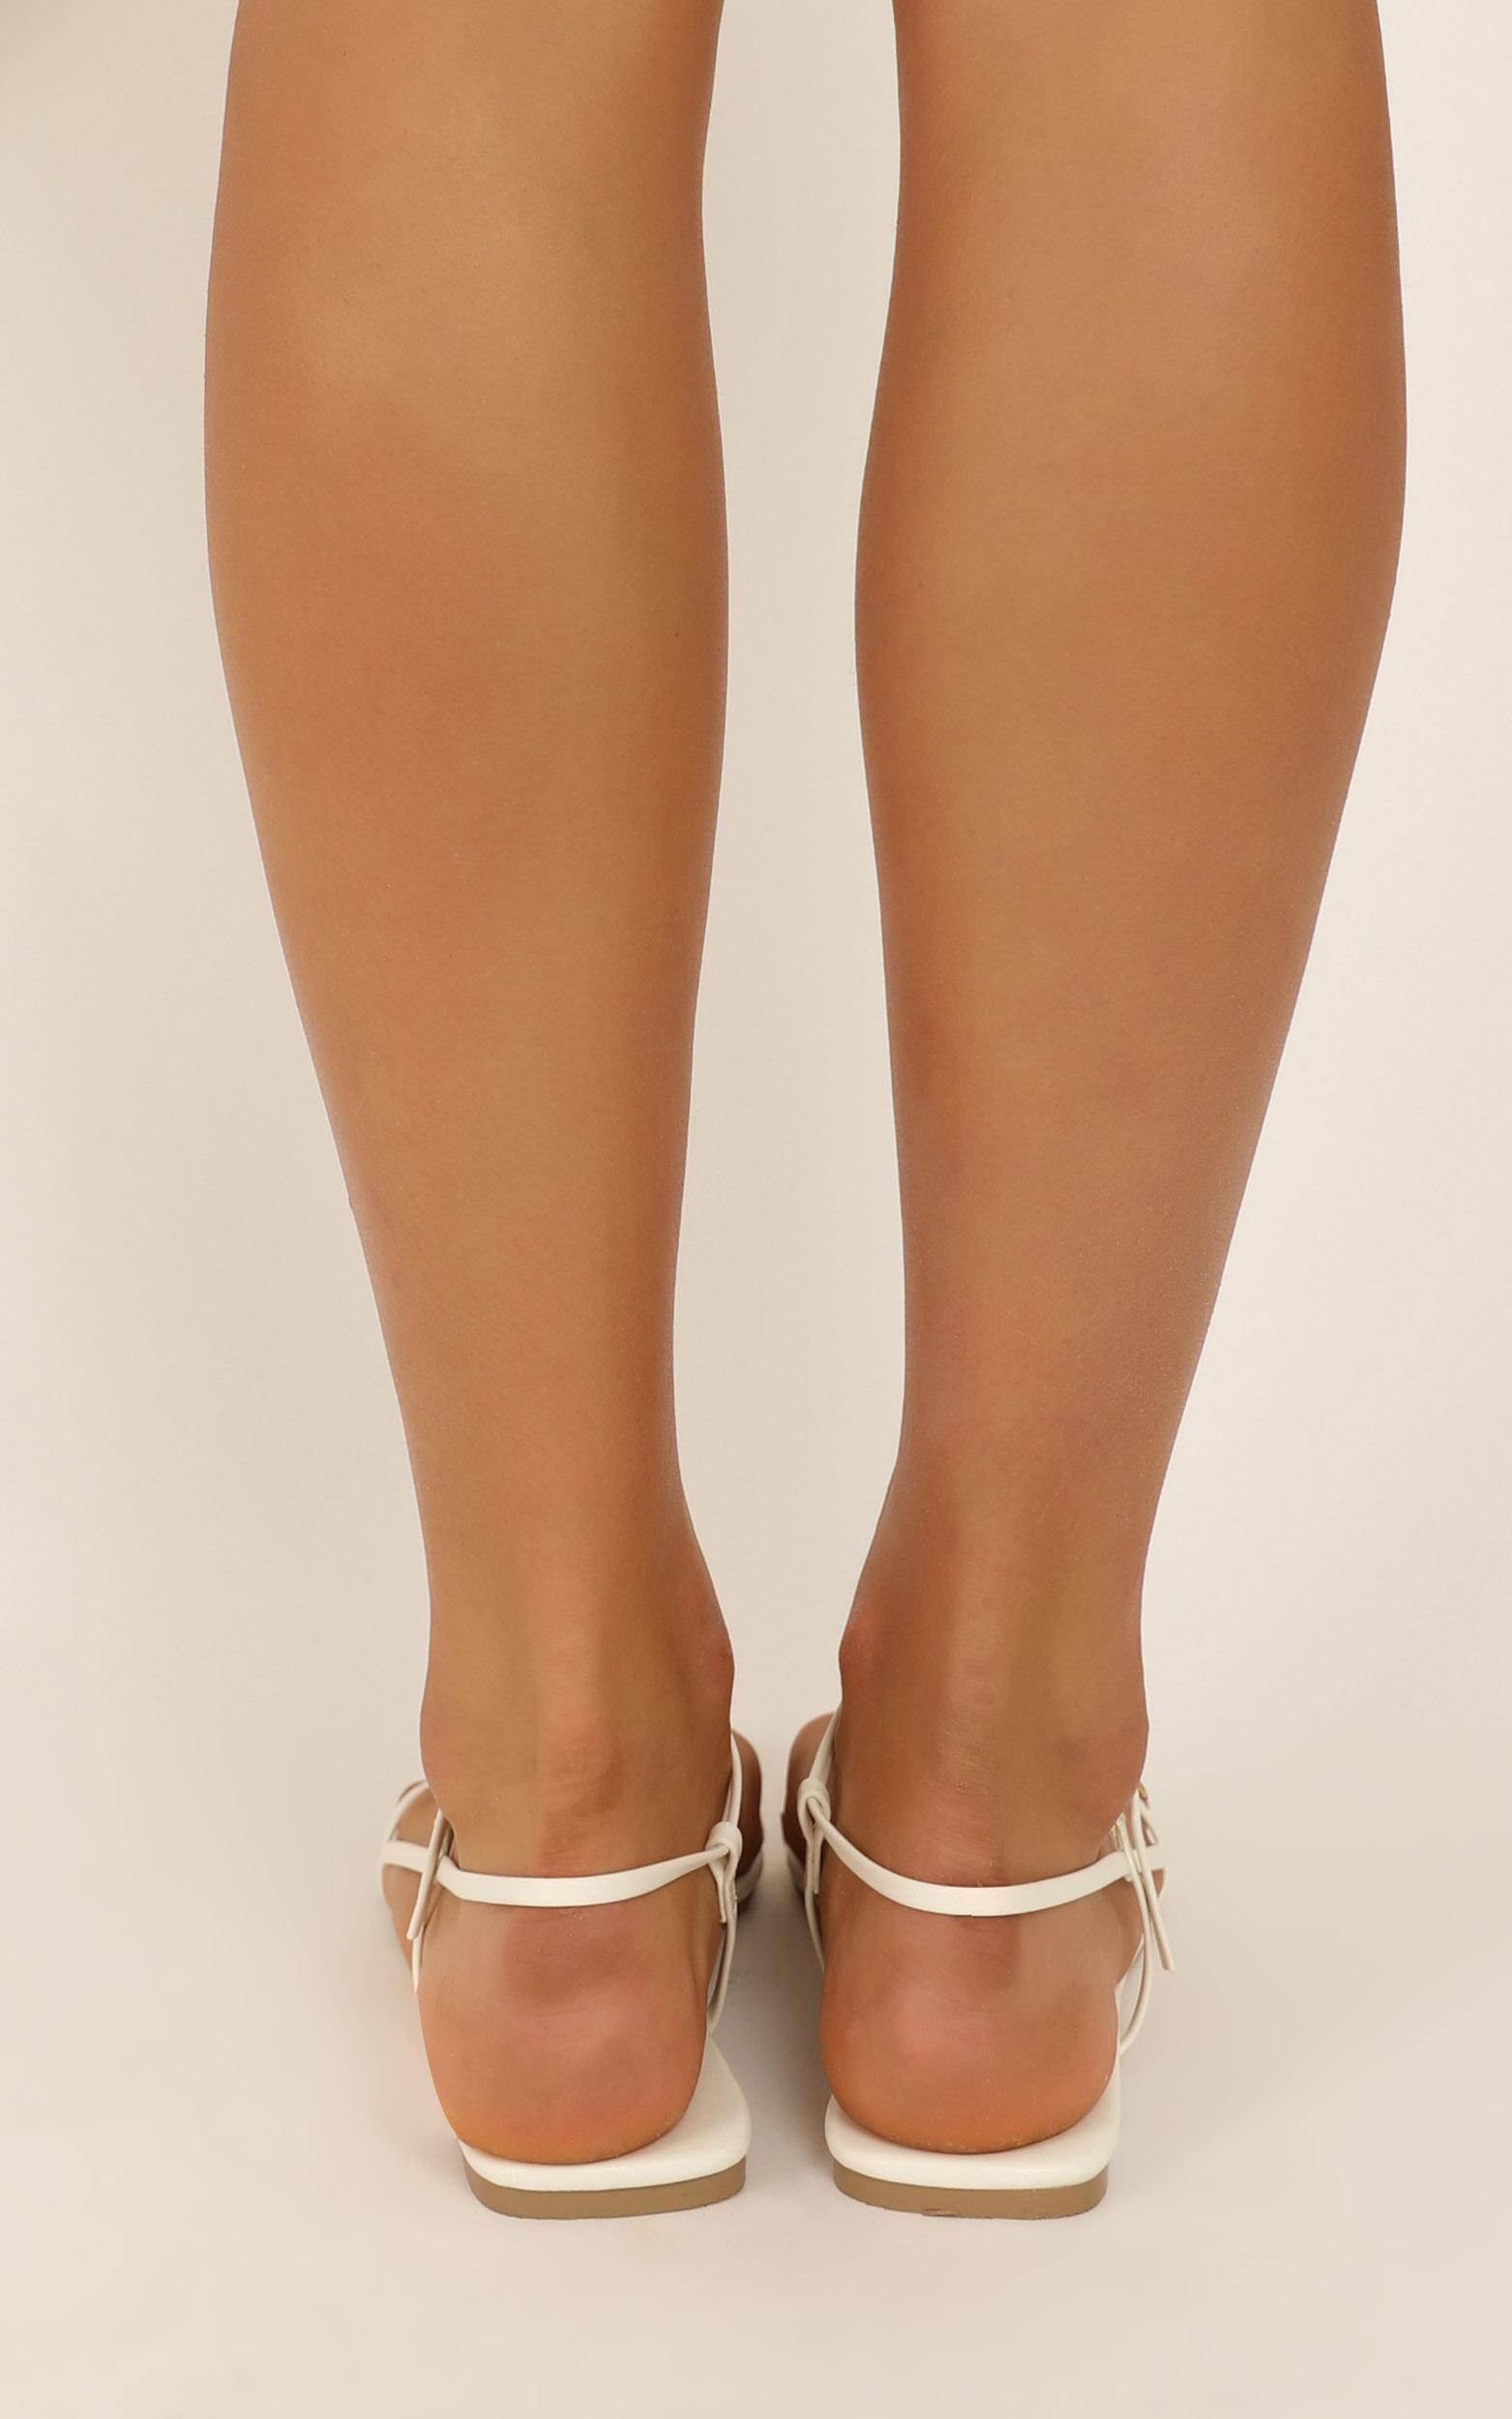 Billini - Patchouli sandals in white - 10, White, hi-res image number null